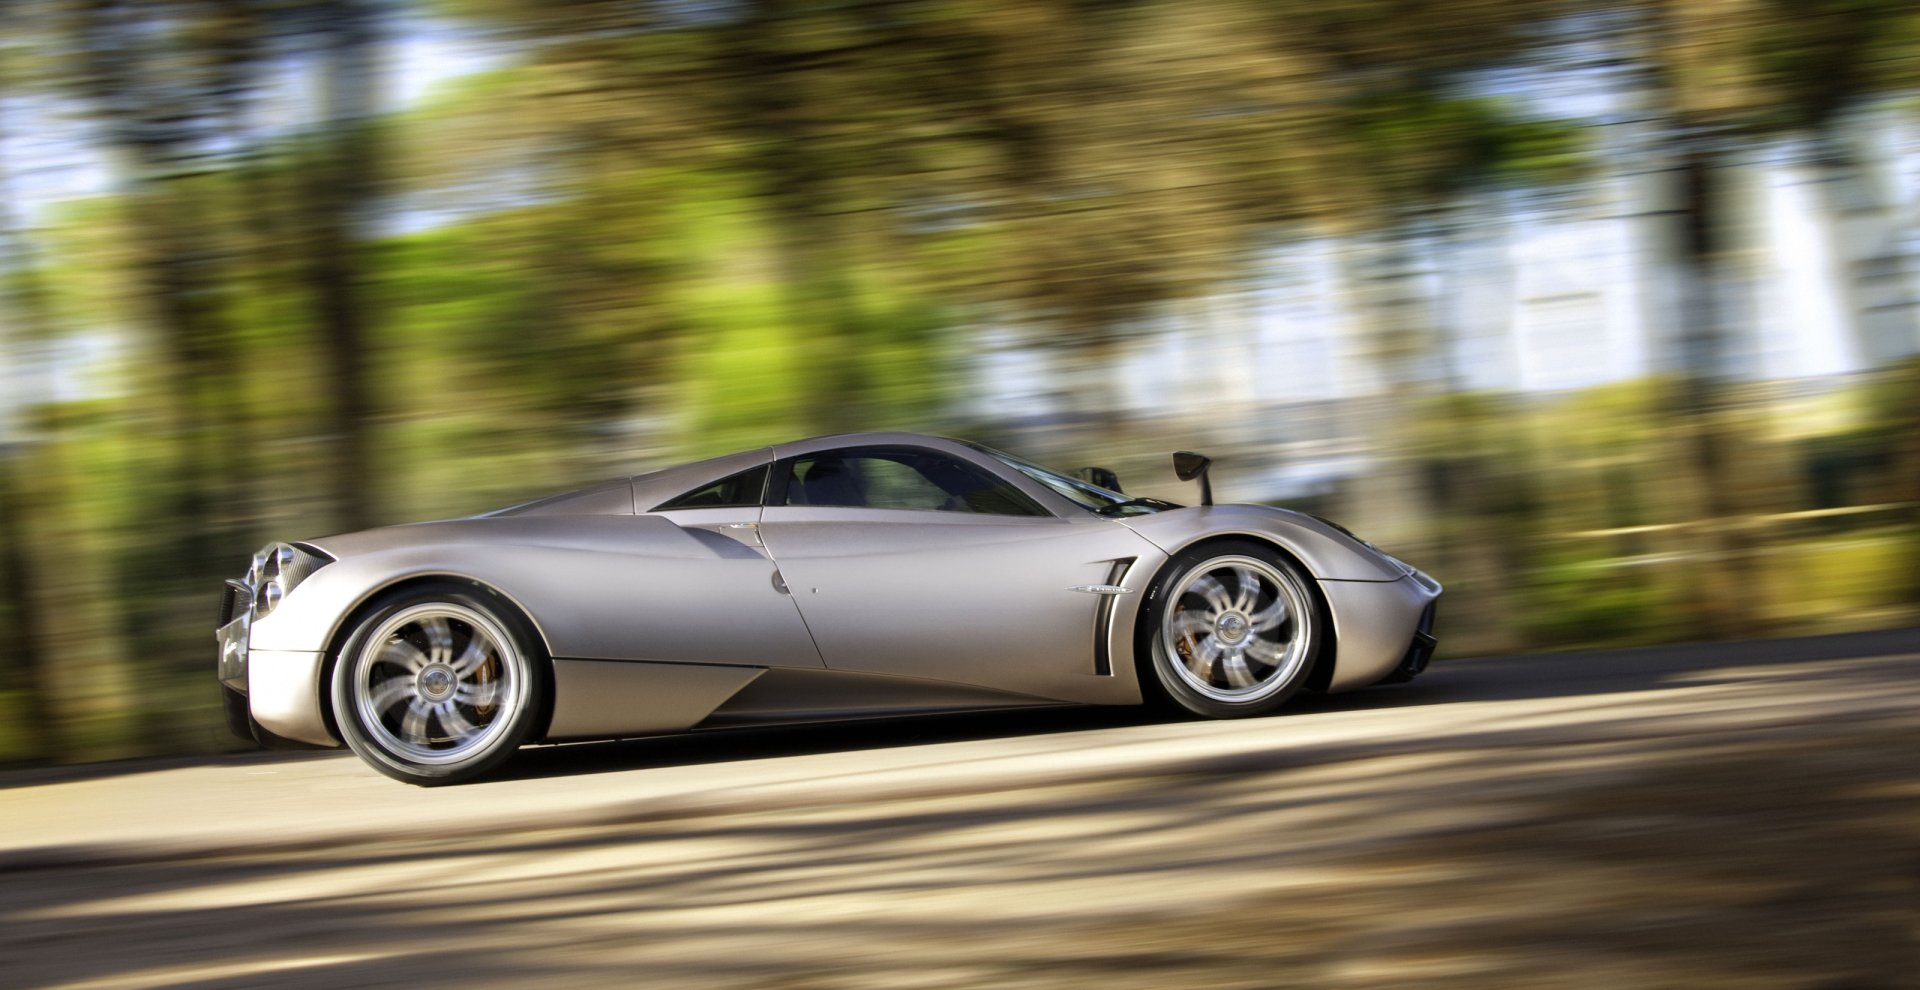 Vehicles - Pagani Huayra  Pagani Huayra Prototype Pagani Supercar Car Vehicle Wallpaper